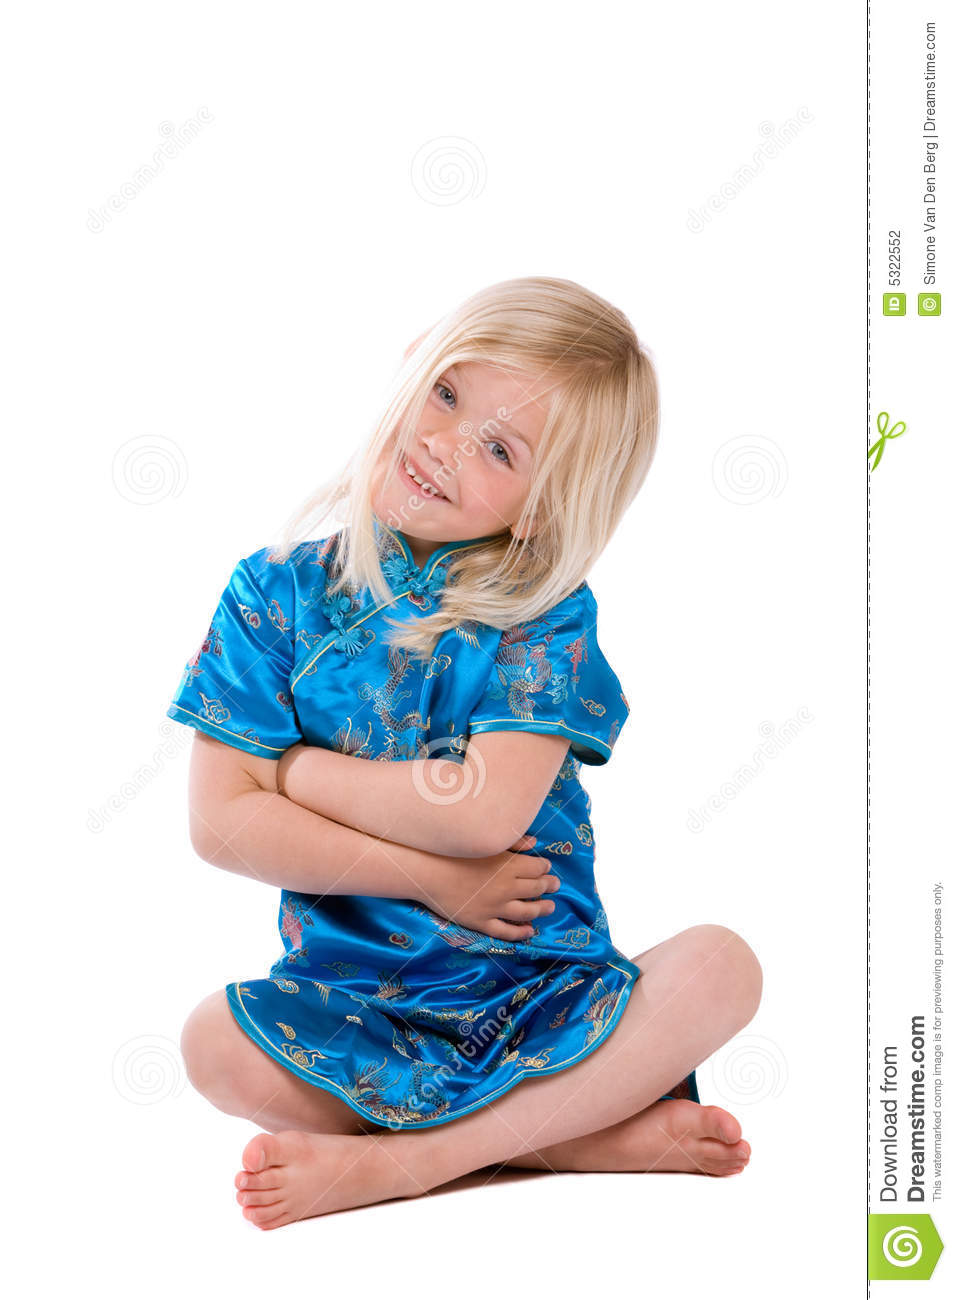 Adorable Four Year Boy With Big Blue Eyes Stock Image: Cute Little Four Year Old Stock Photography